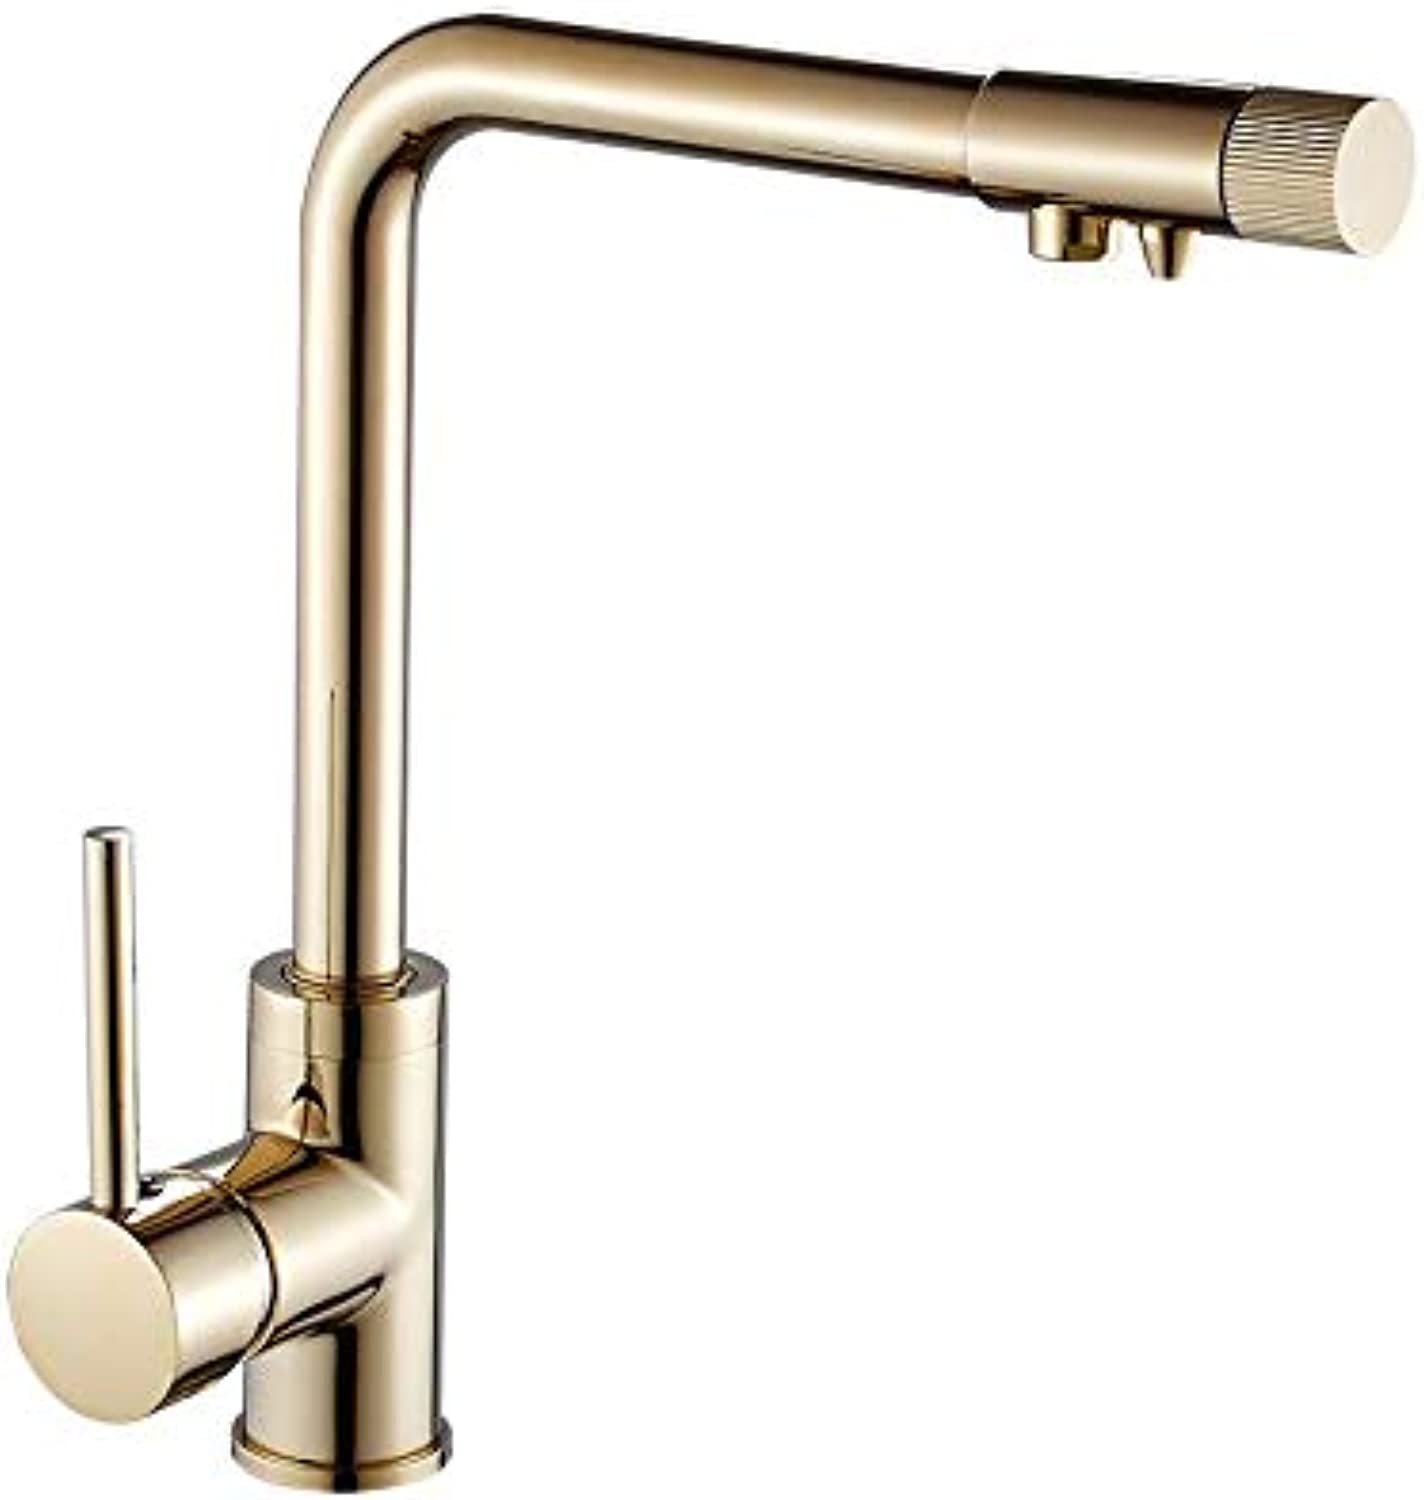 Kitchen Sink Taps golden Hot and Cold Kitchen Water Purifier Double Faucet Sink redates Out of The Water